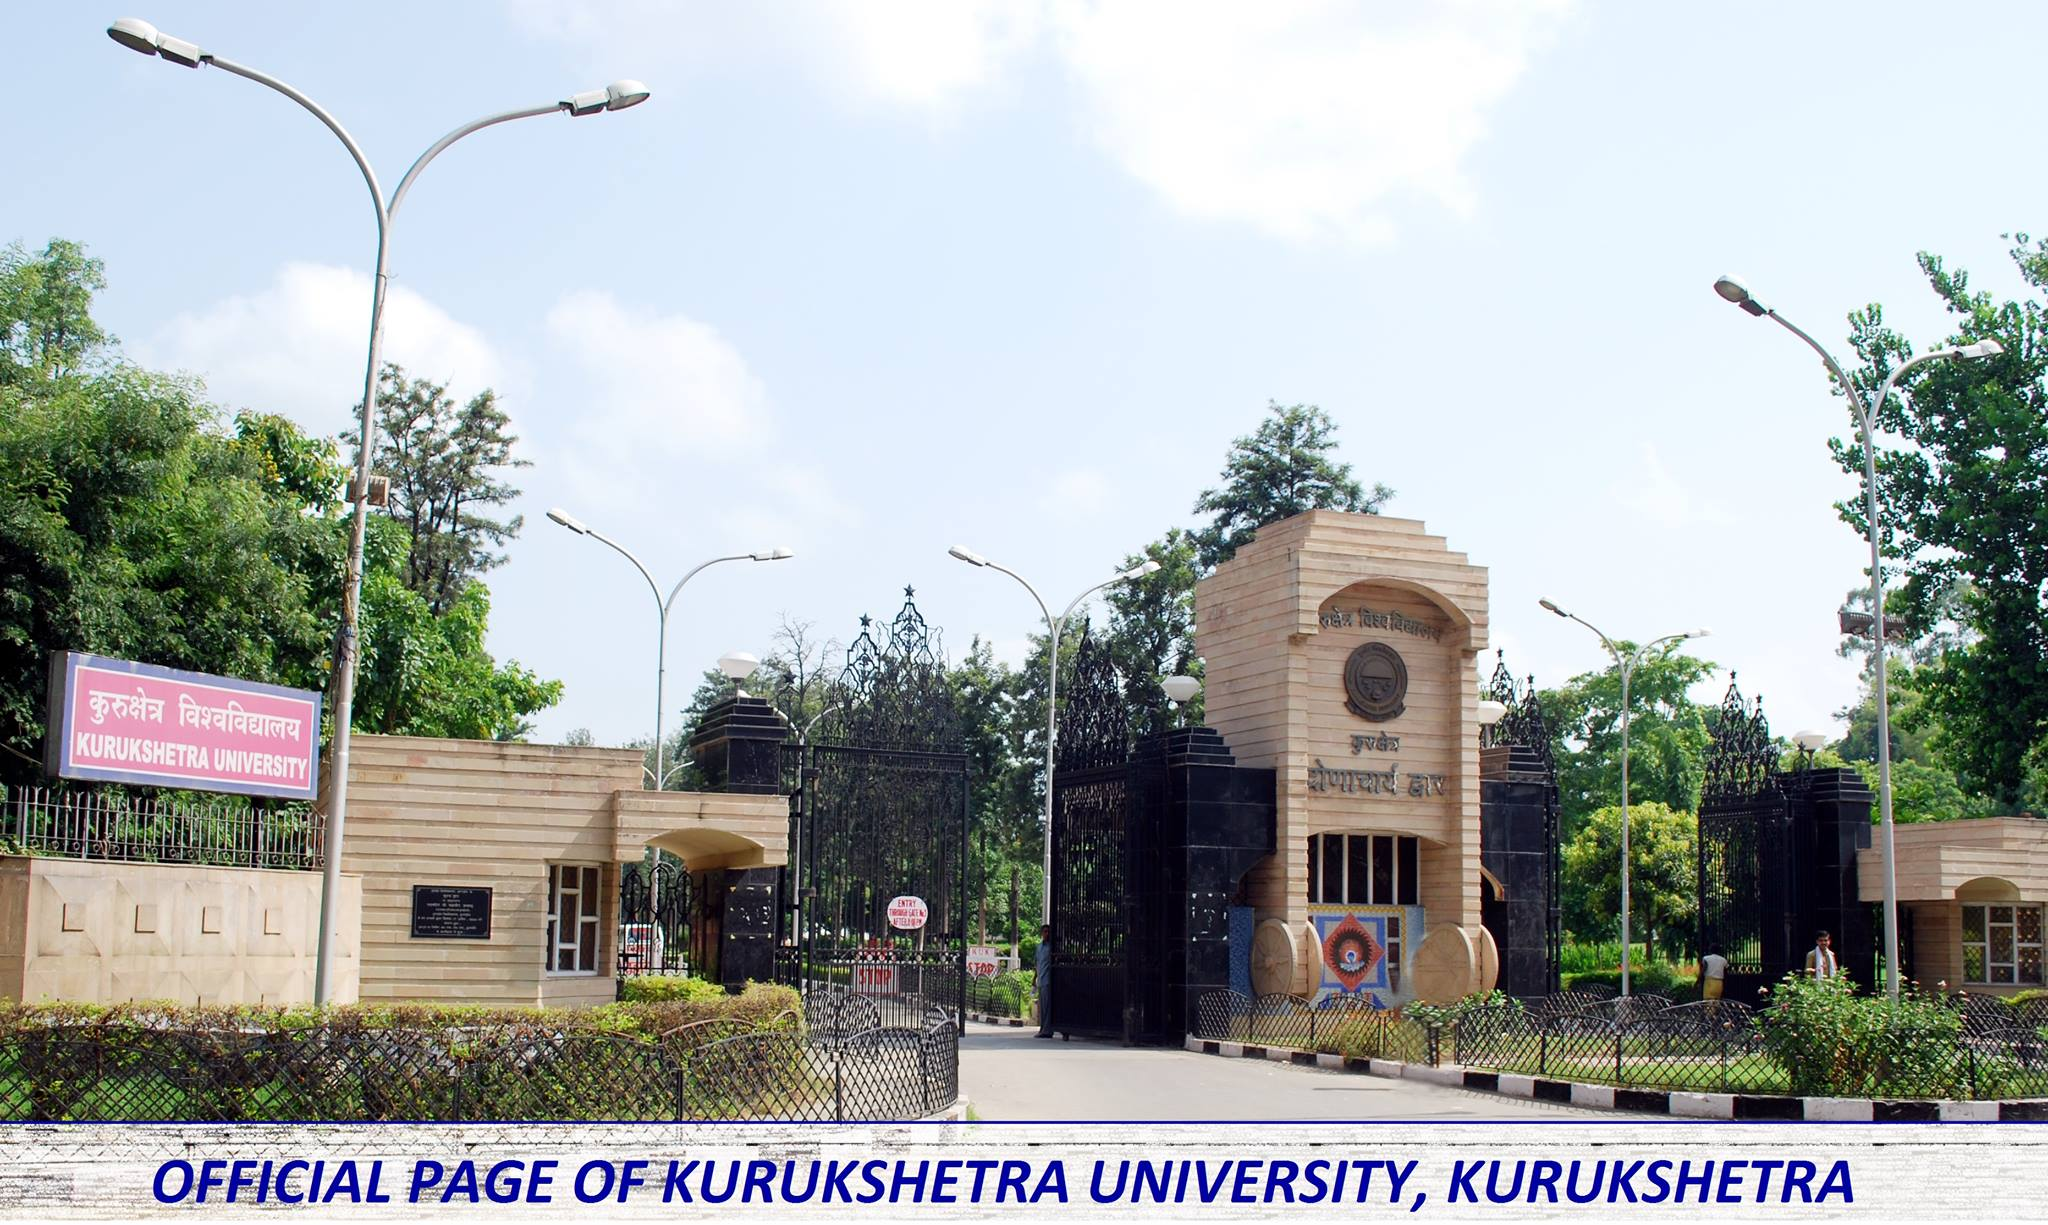 Kurukshetra University is hiring more than 115 faculty positions